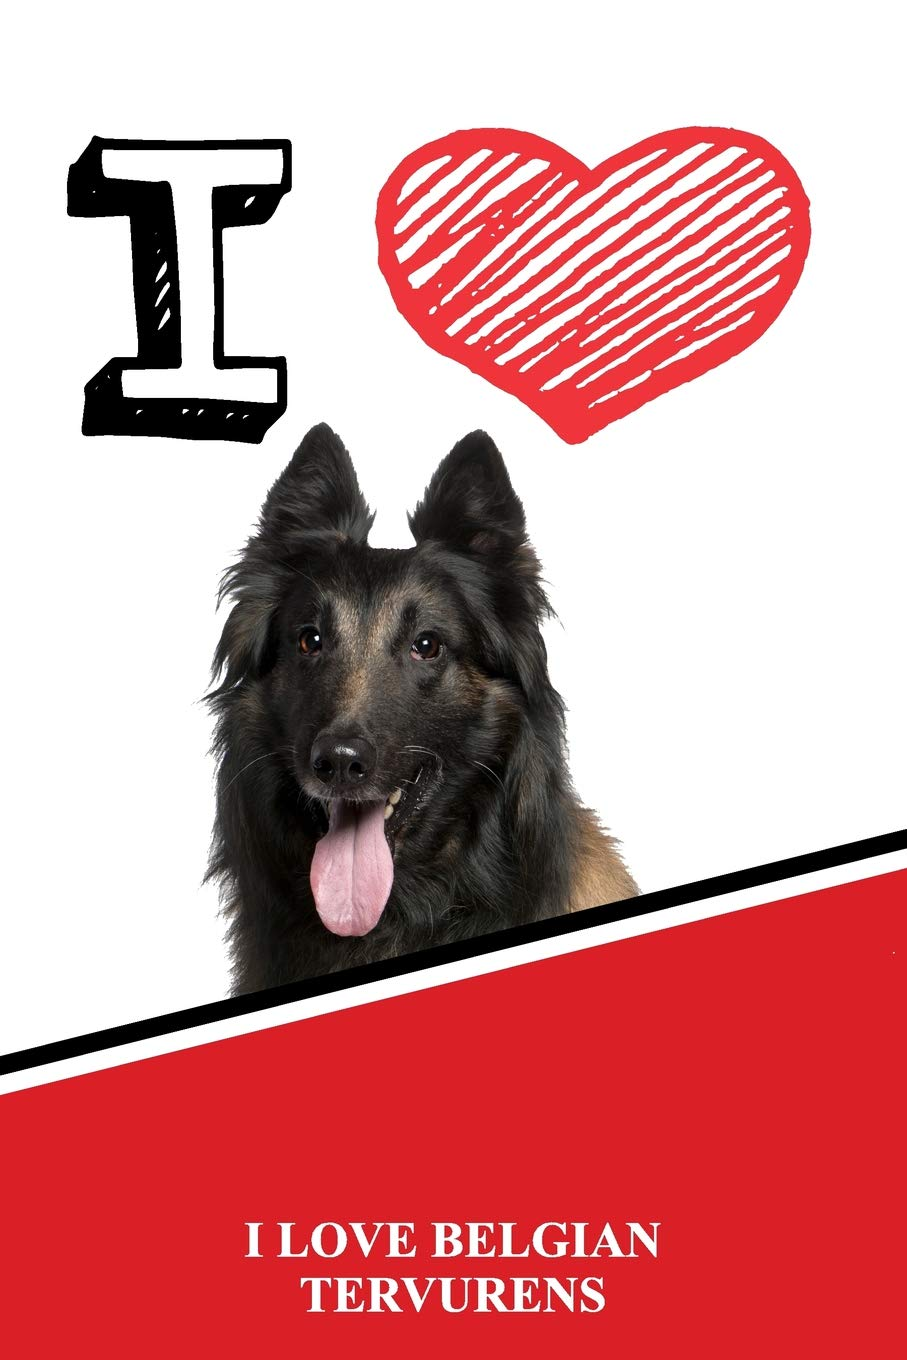 I Love Belgian Tervurens: Jiu-Jitsu Training Diary Training journal log feature 120 pages 6″x9″